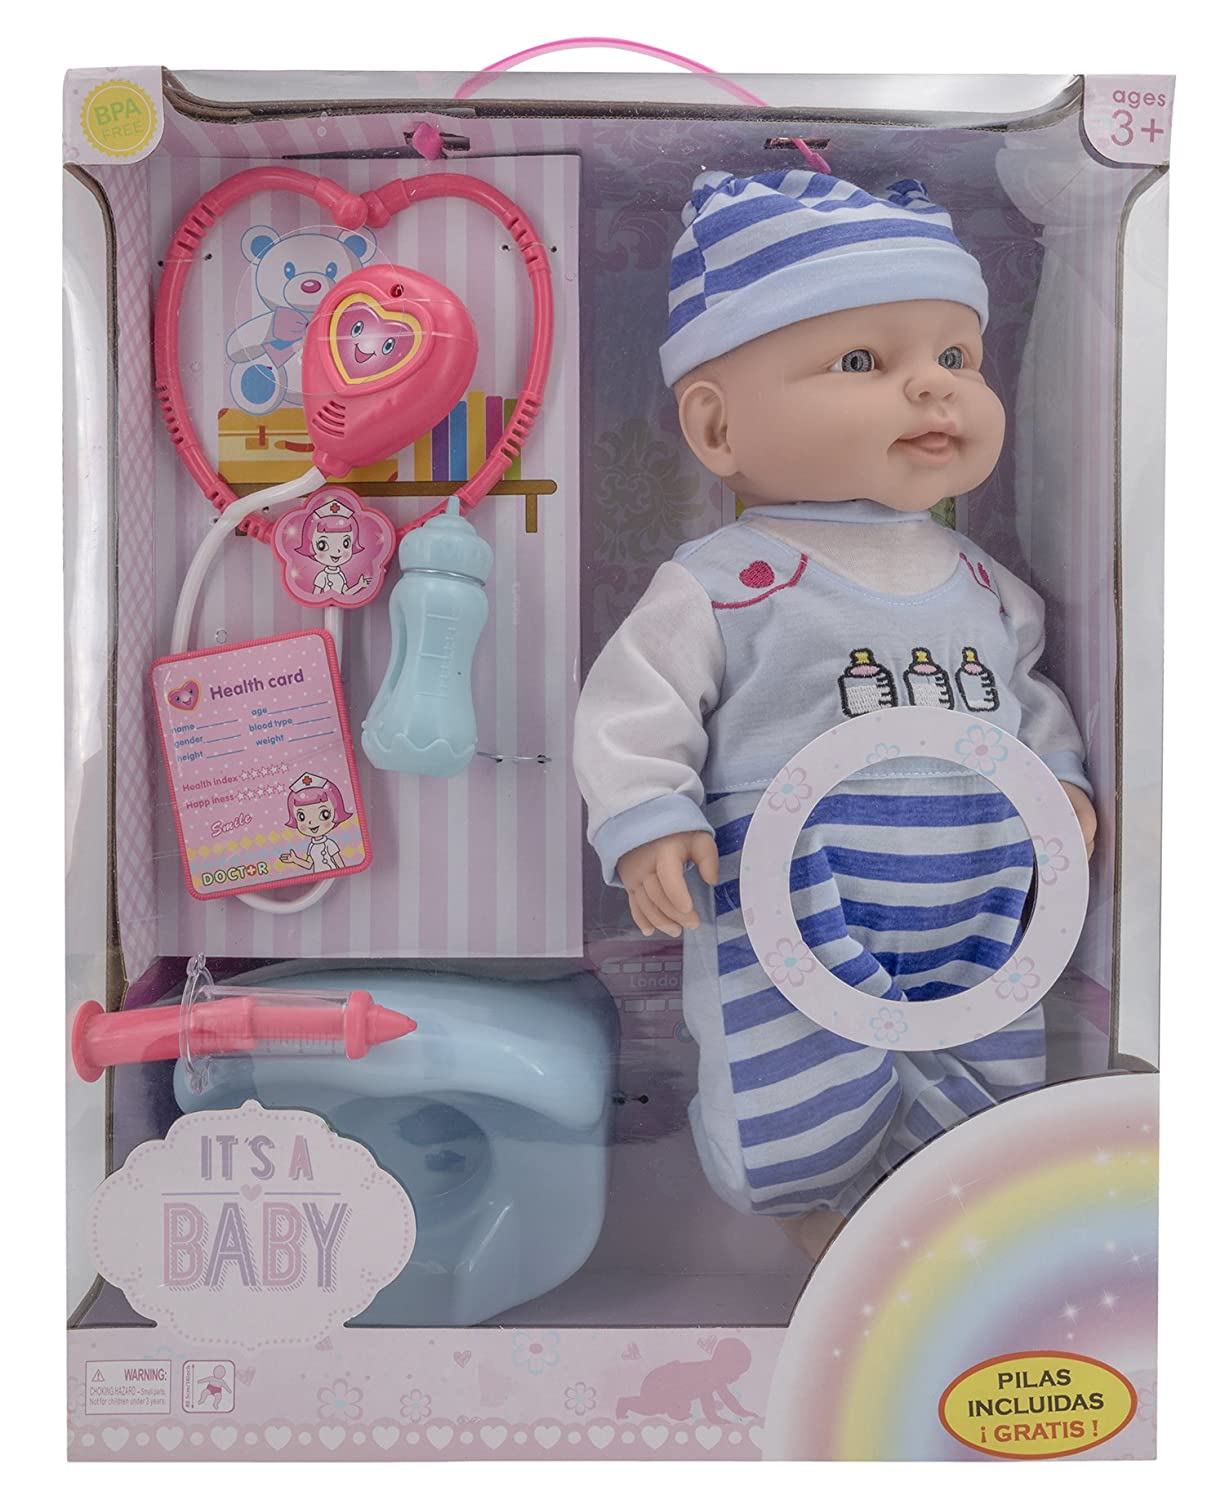 Toys Outlet Mu/ñeca con Accesorios. Baby May May 5406332784